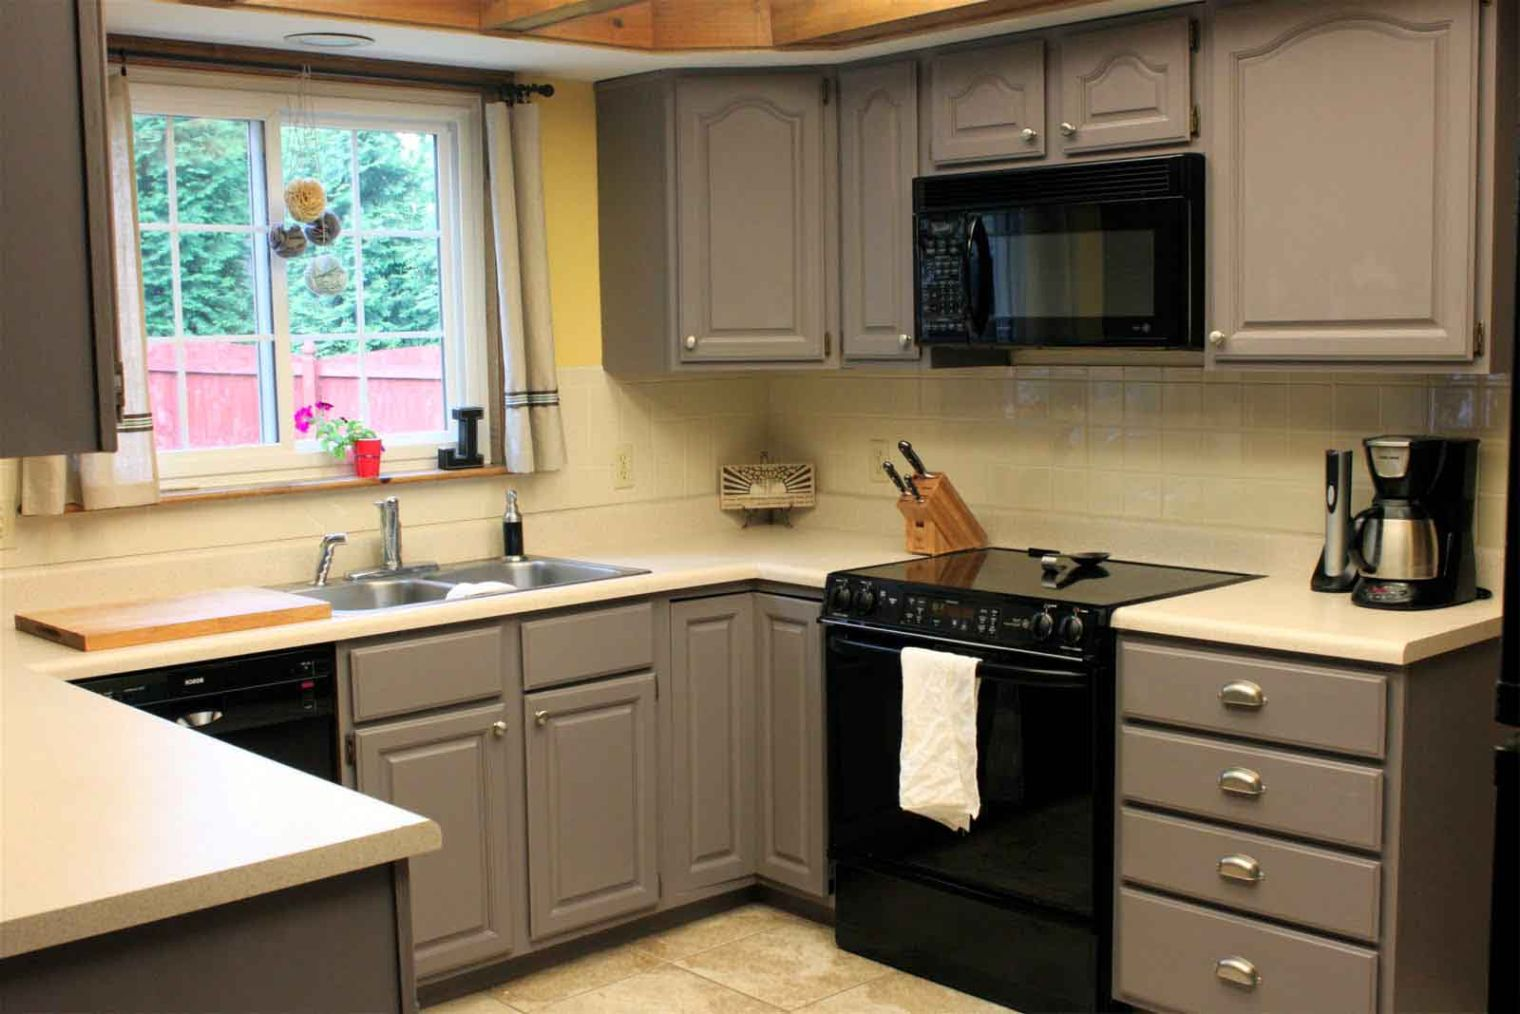 Grey Painted Kitchen Cabinets In Small Kitchen Space - Refinishing kitchen cabinets grey